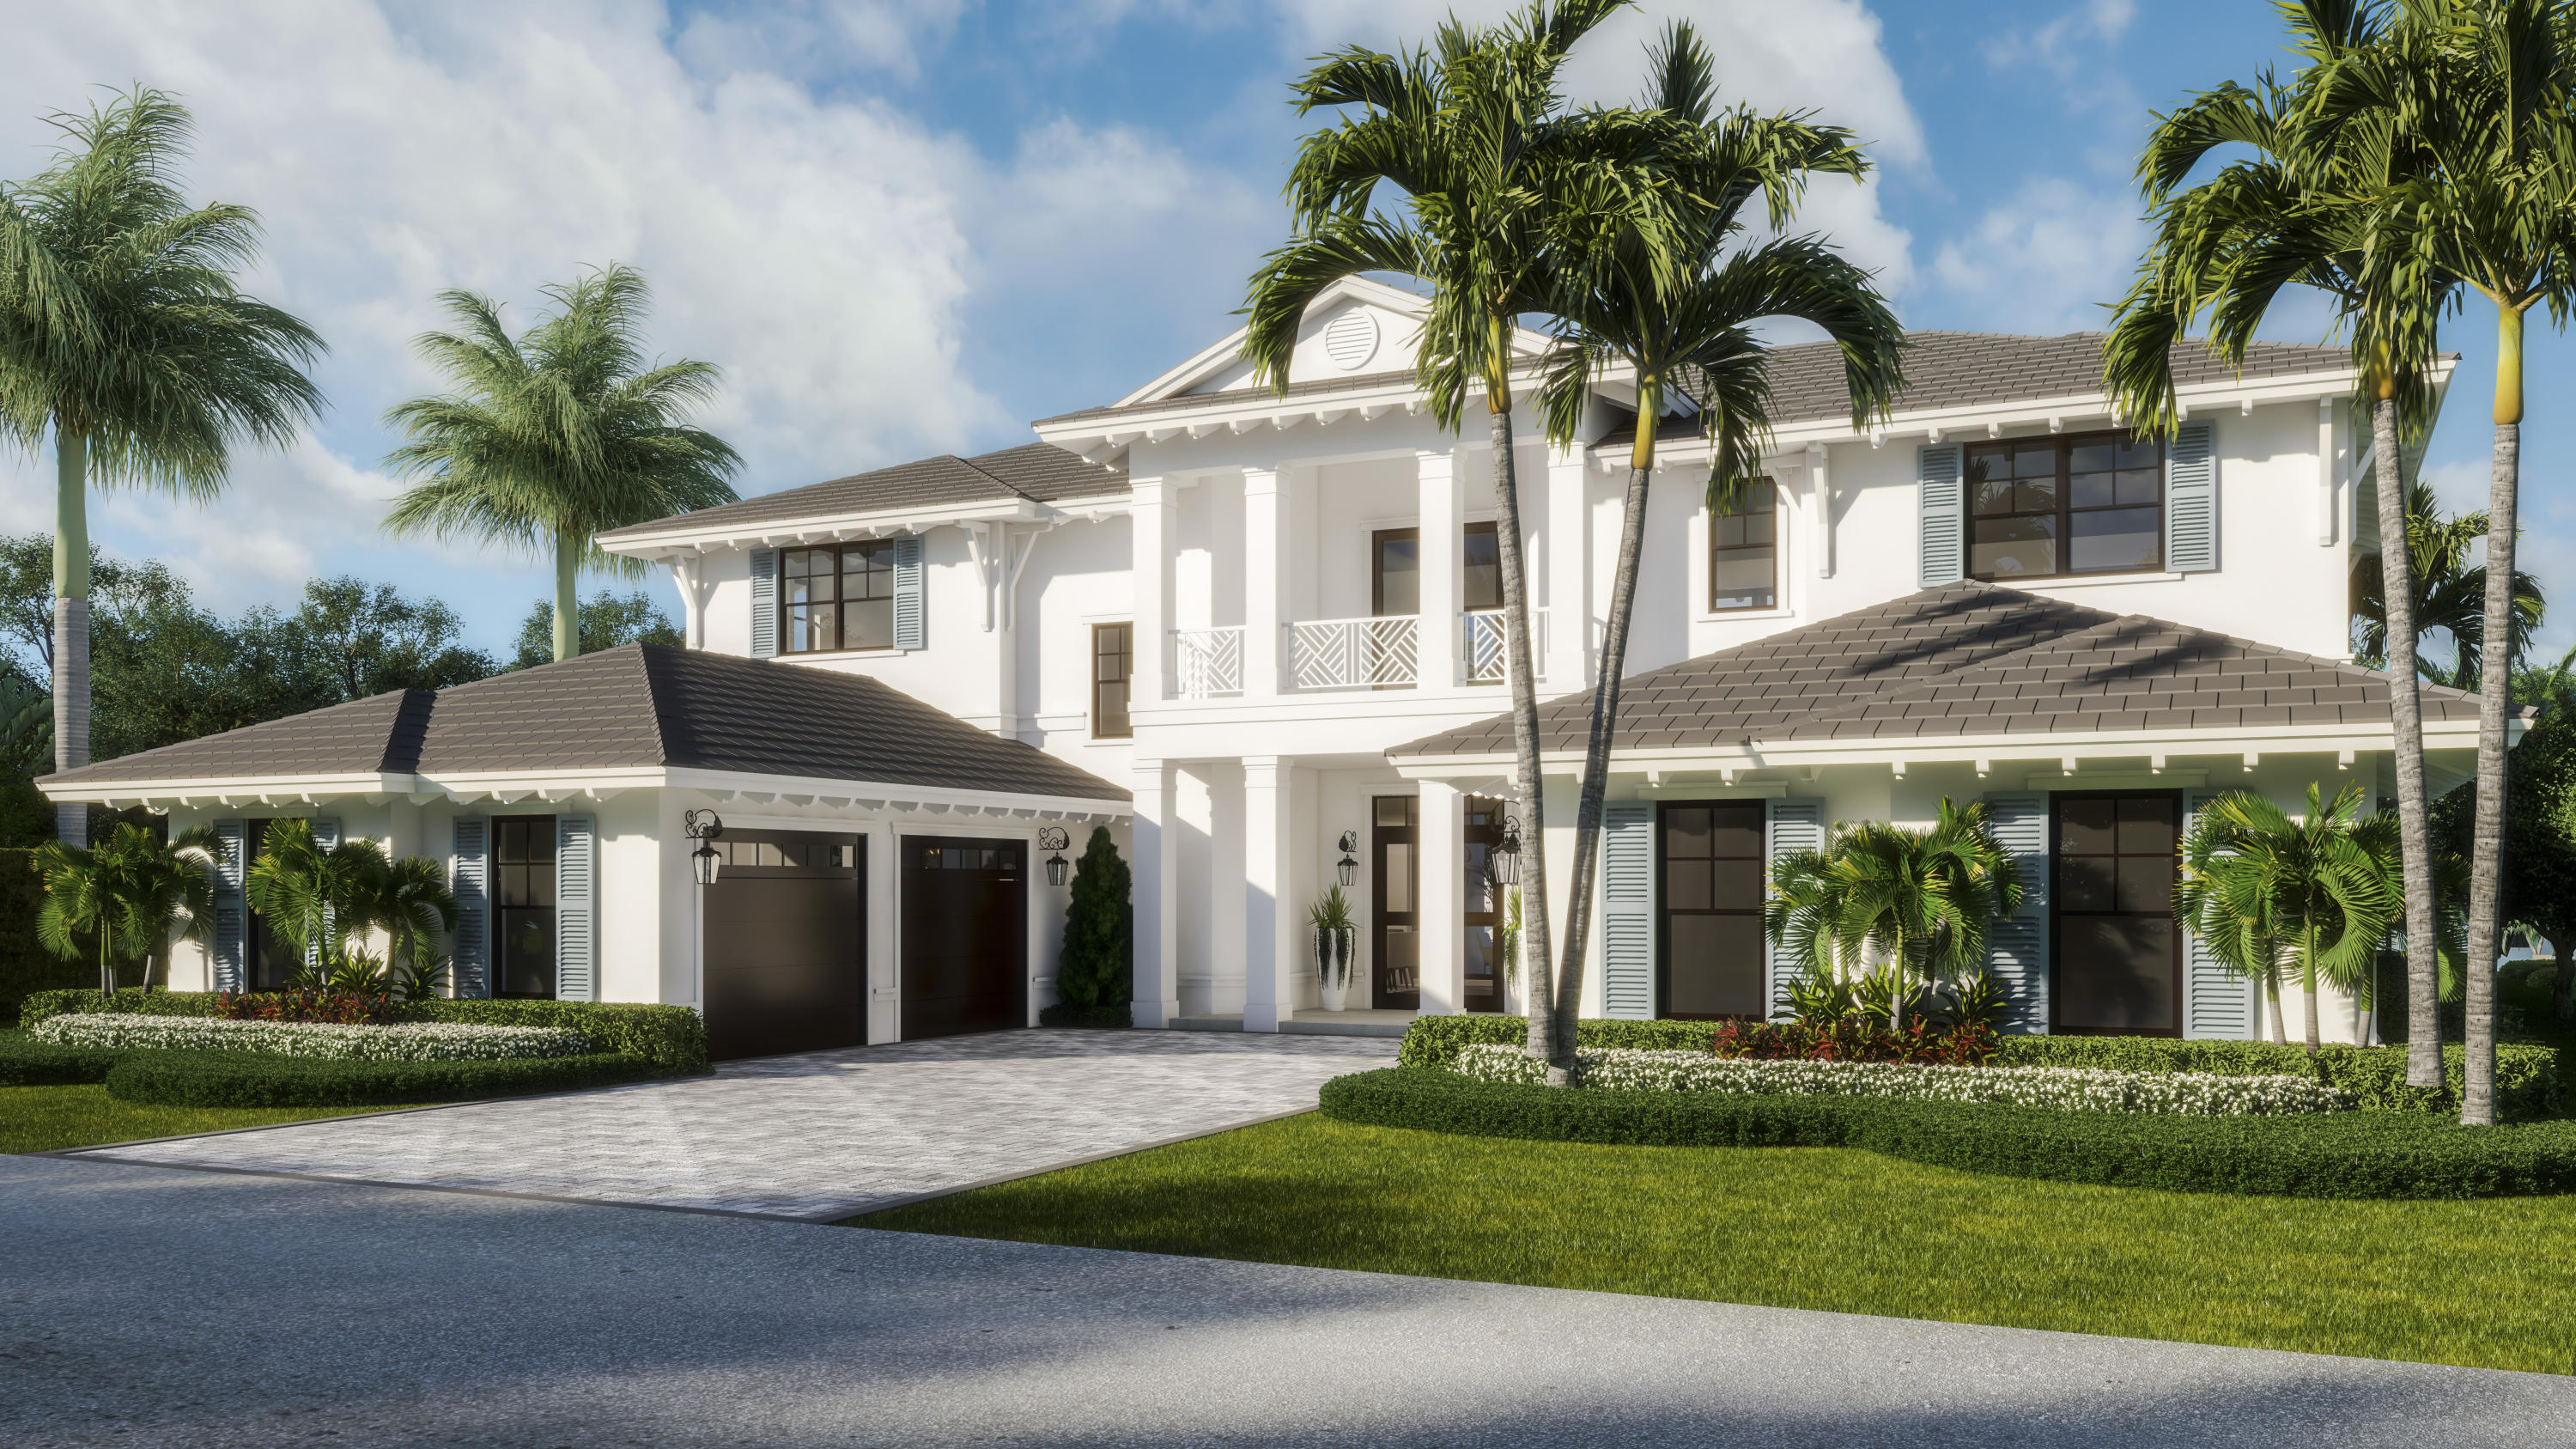 1090  Coral Way  For Sale 10692442, FL